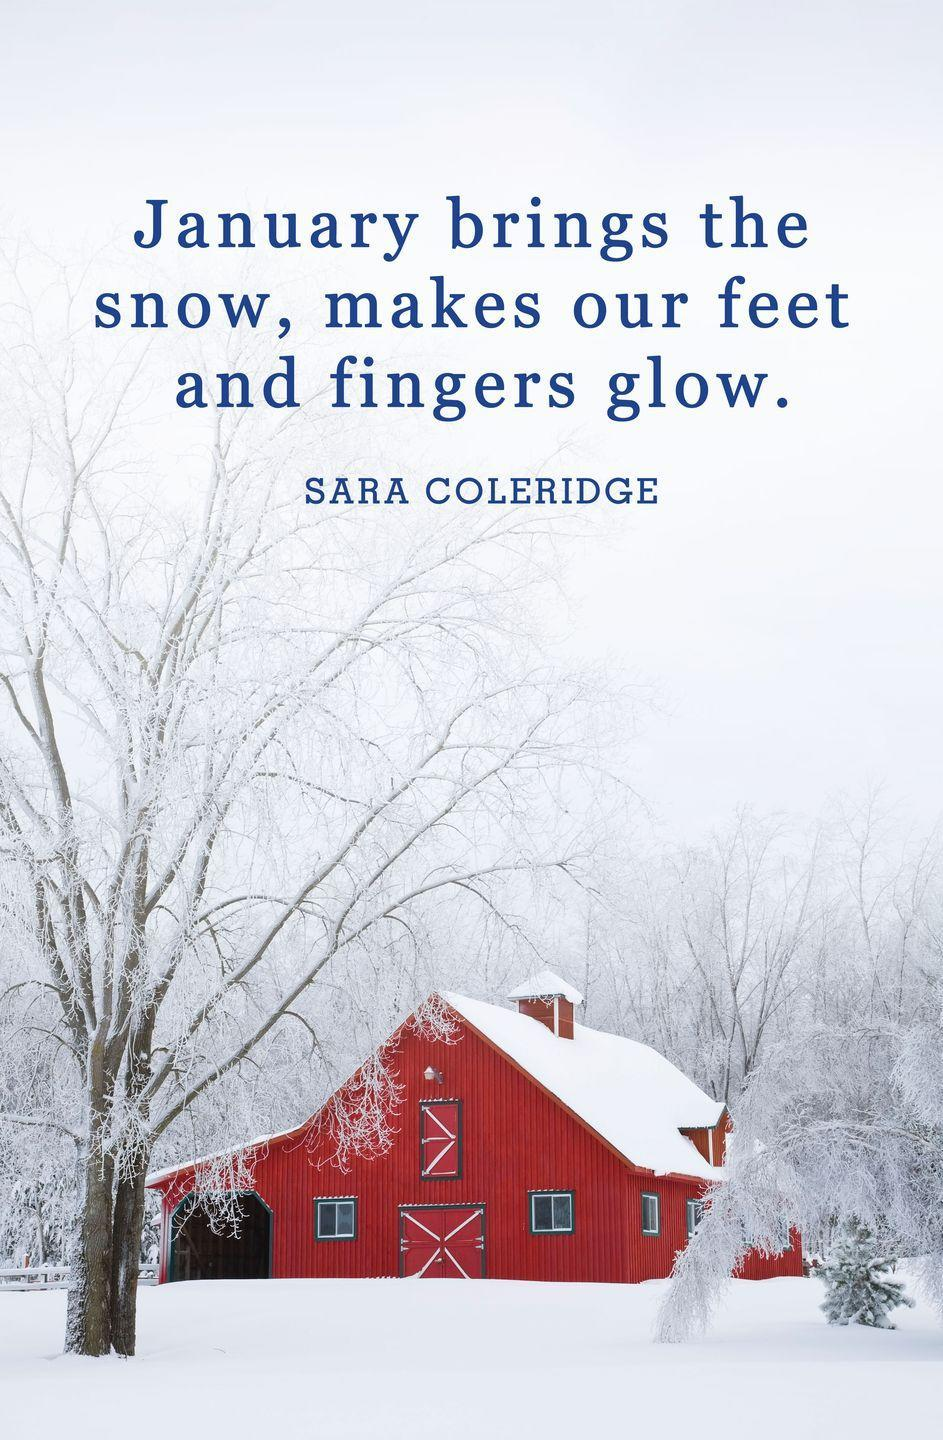 "<p>""January brings the snow, makes our feet and fingers glow.""</p>"